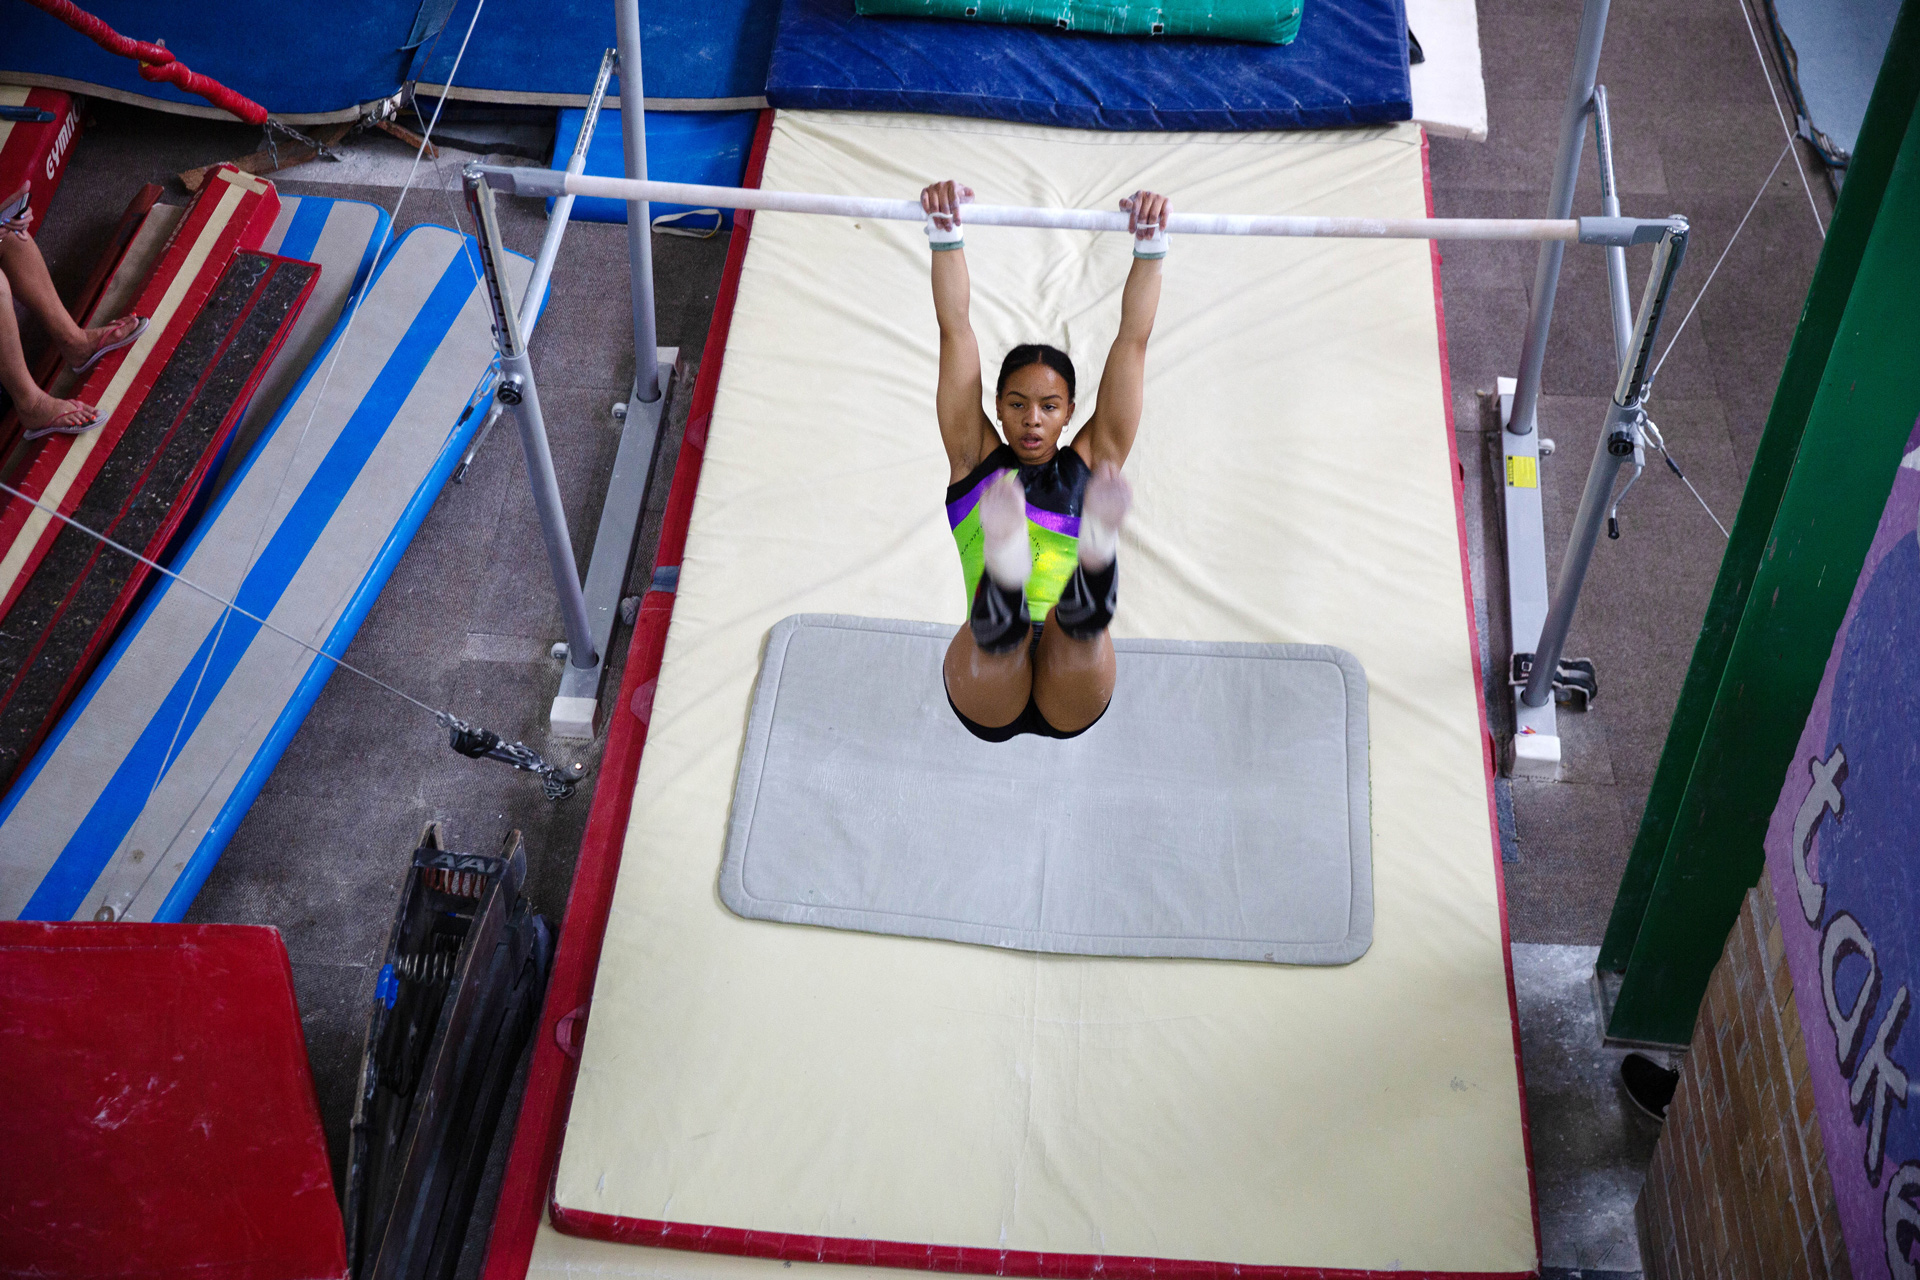 19 November 2019: Caitlin Rooskrantz's bar routine earned her a gold medal at the FIG World Challenge Cup in Hungary.